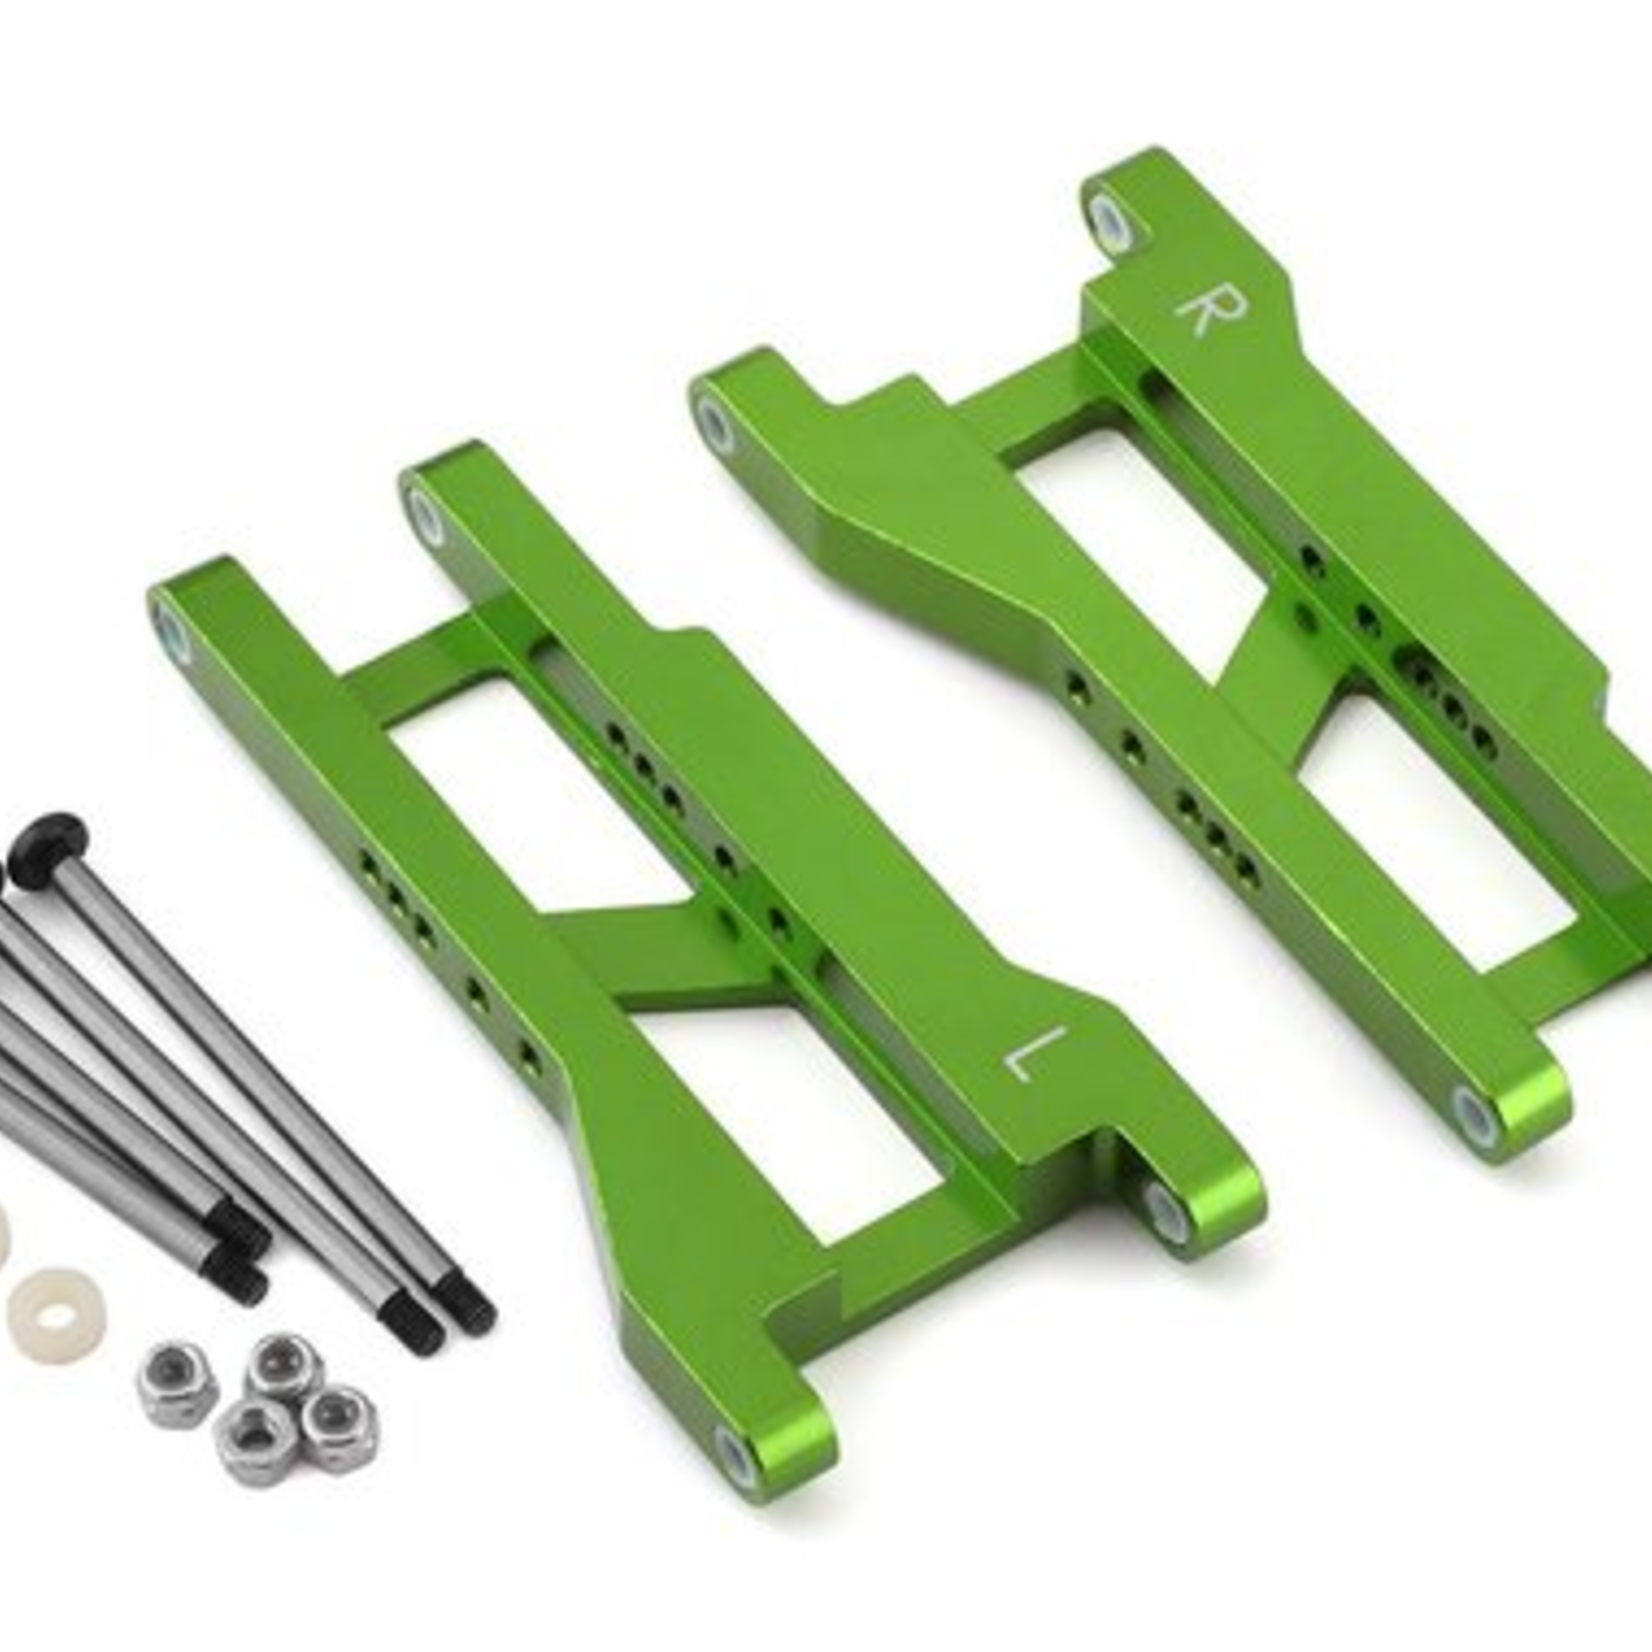 ST Racing Concepts SPTST2555XG ST Racing Concepts CNC Machined Aluminum Rear A-Arm set (w/steel hinge-pins) for Traxxas Slash (Green)